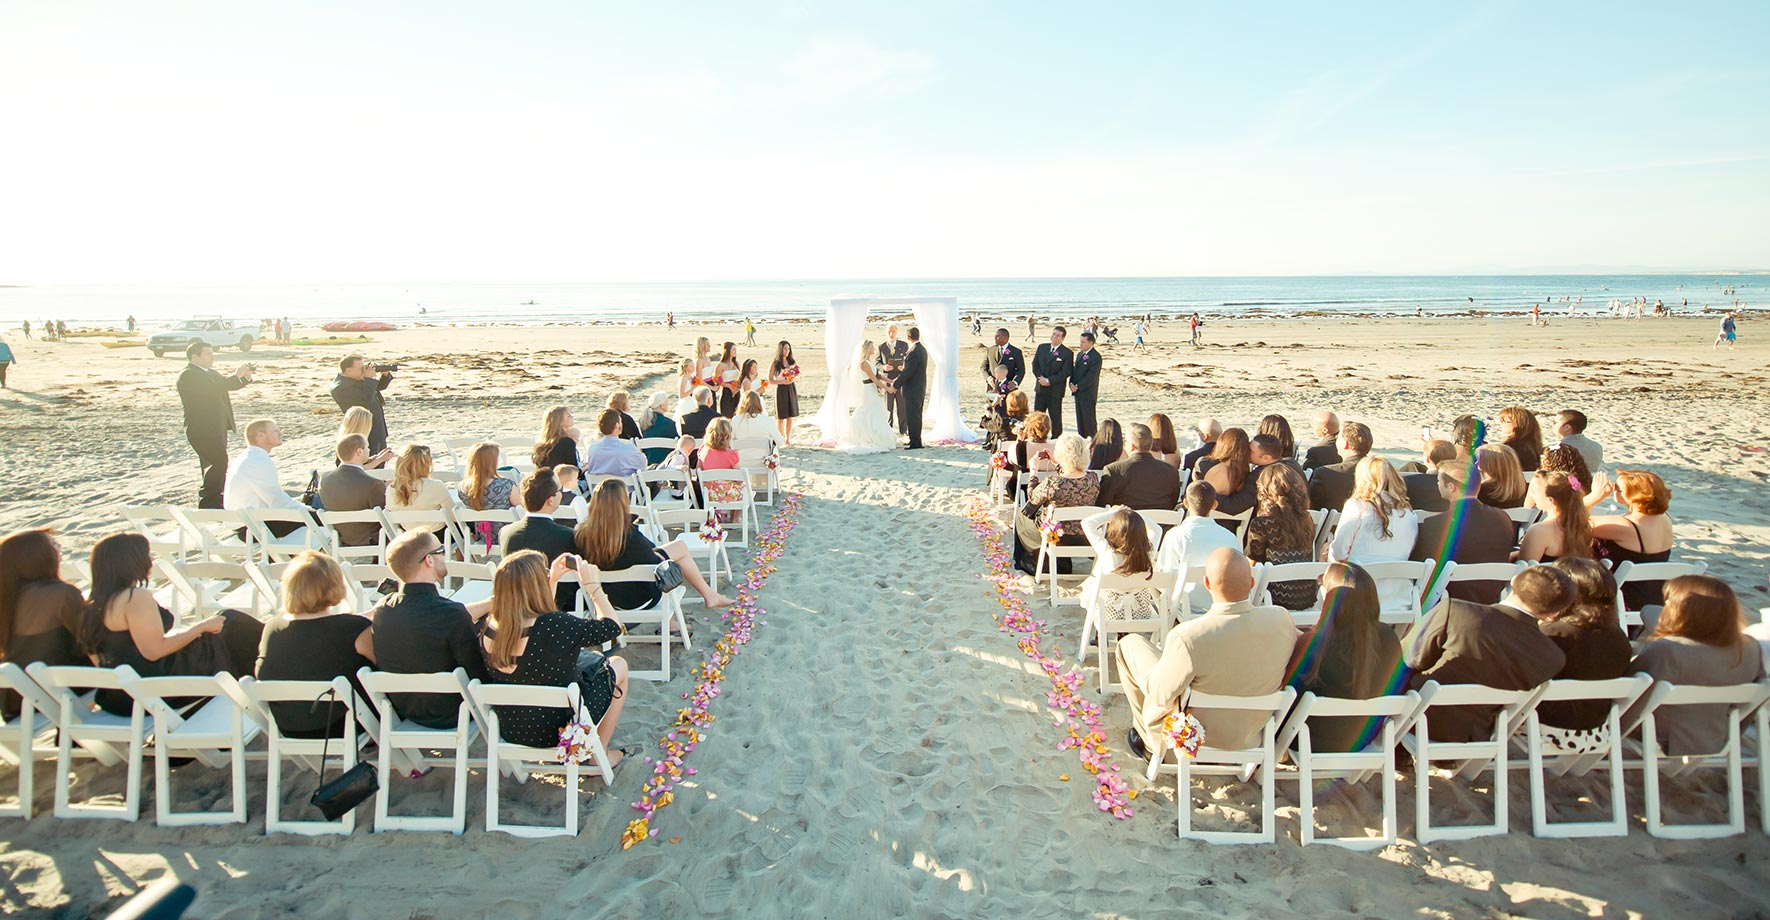 La Jolla Ss Hotel Beach Wedding Ceremony